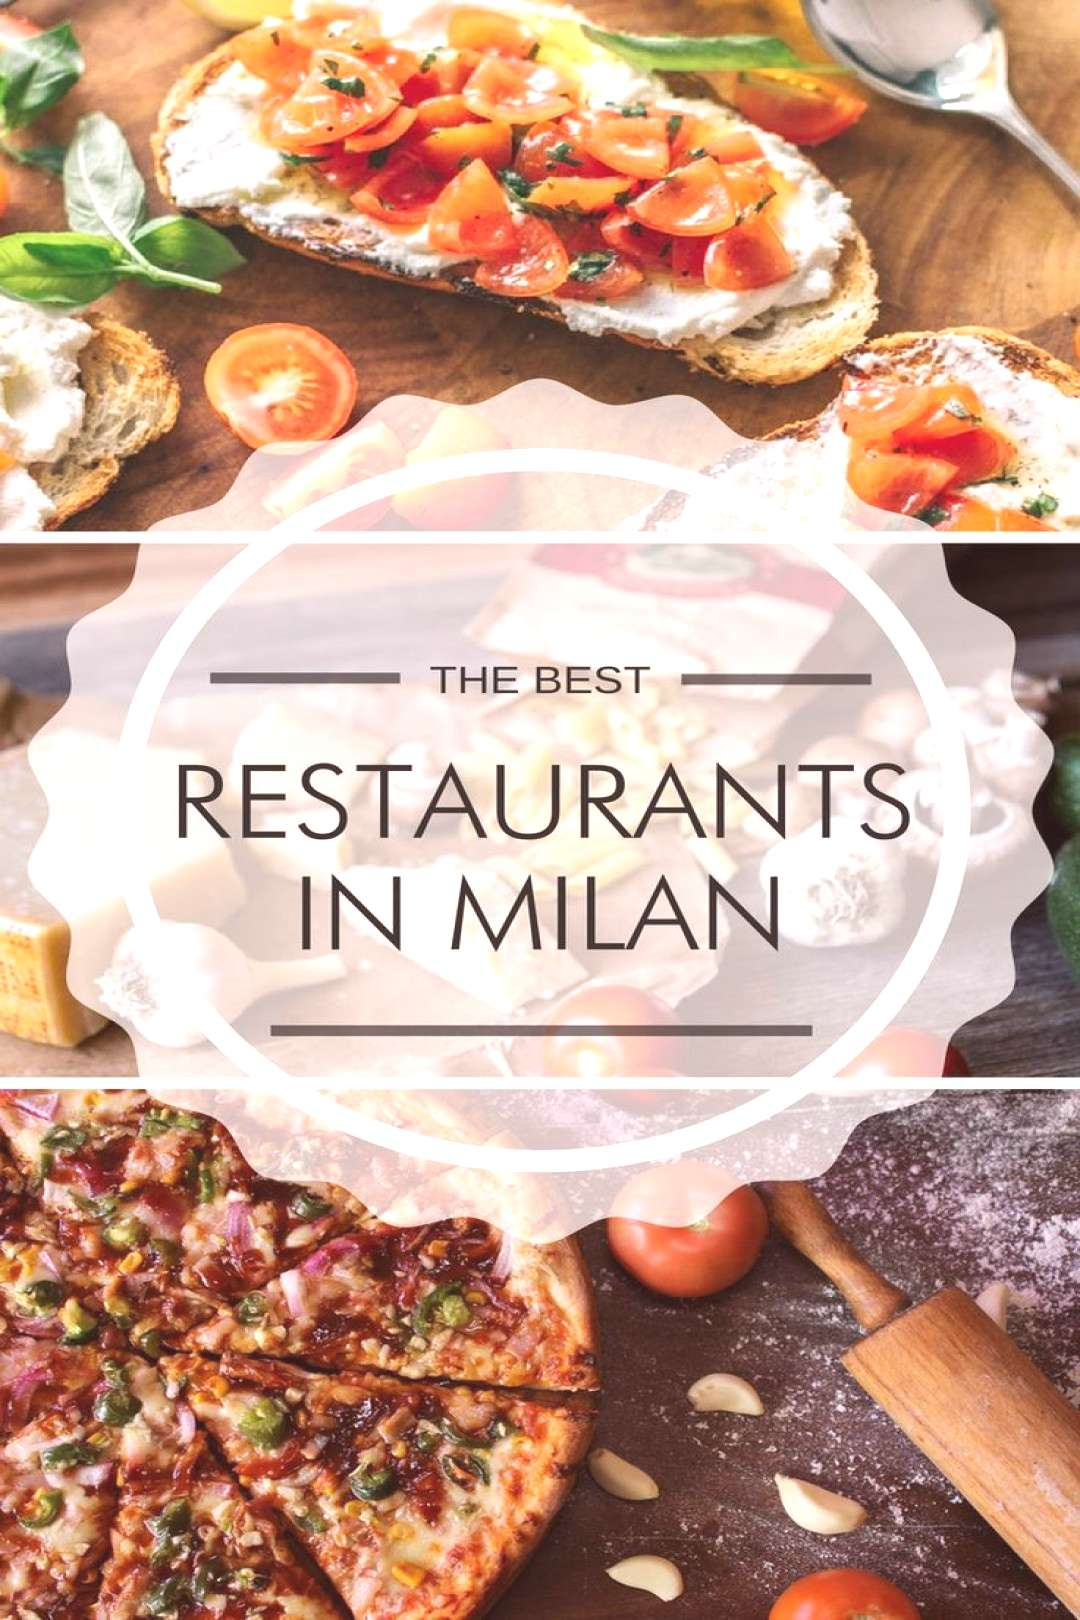 City-break to Milan? Here are the 7 best restaurants in Milan -   -